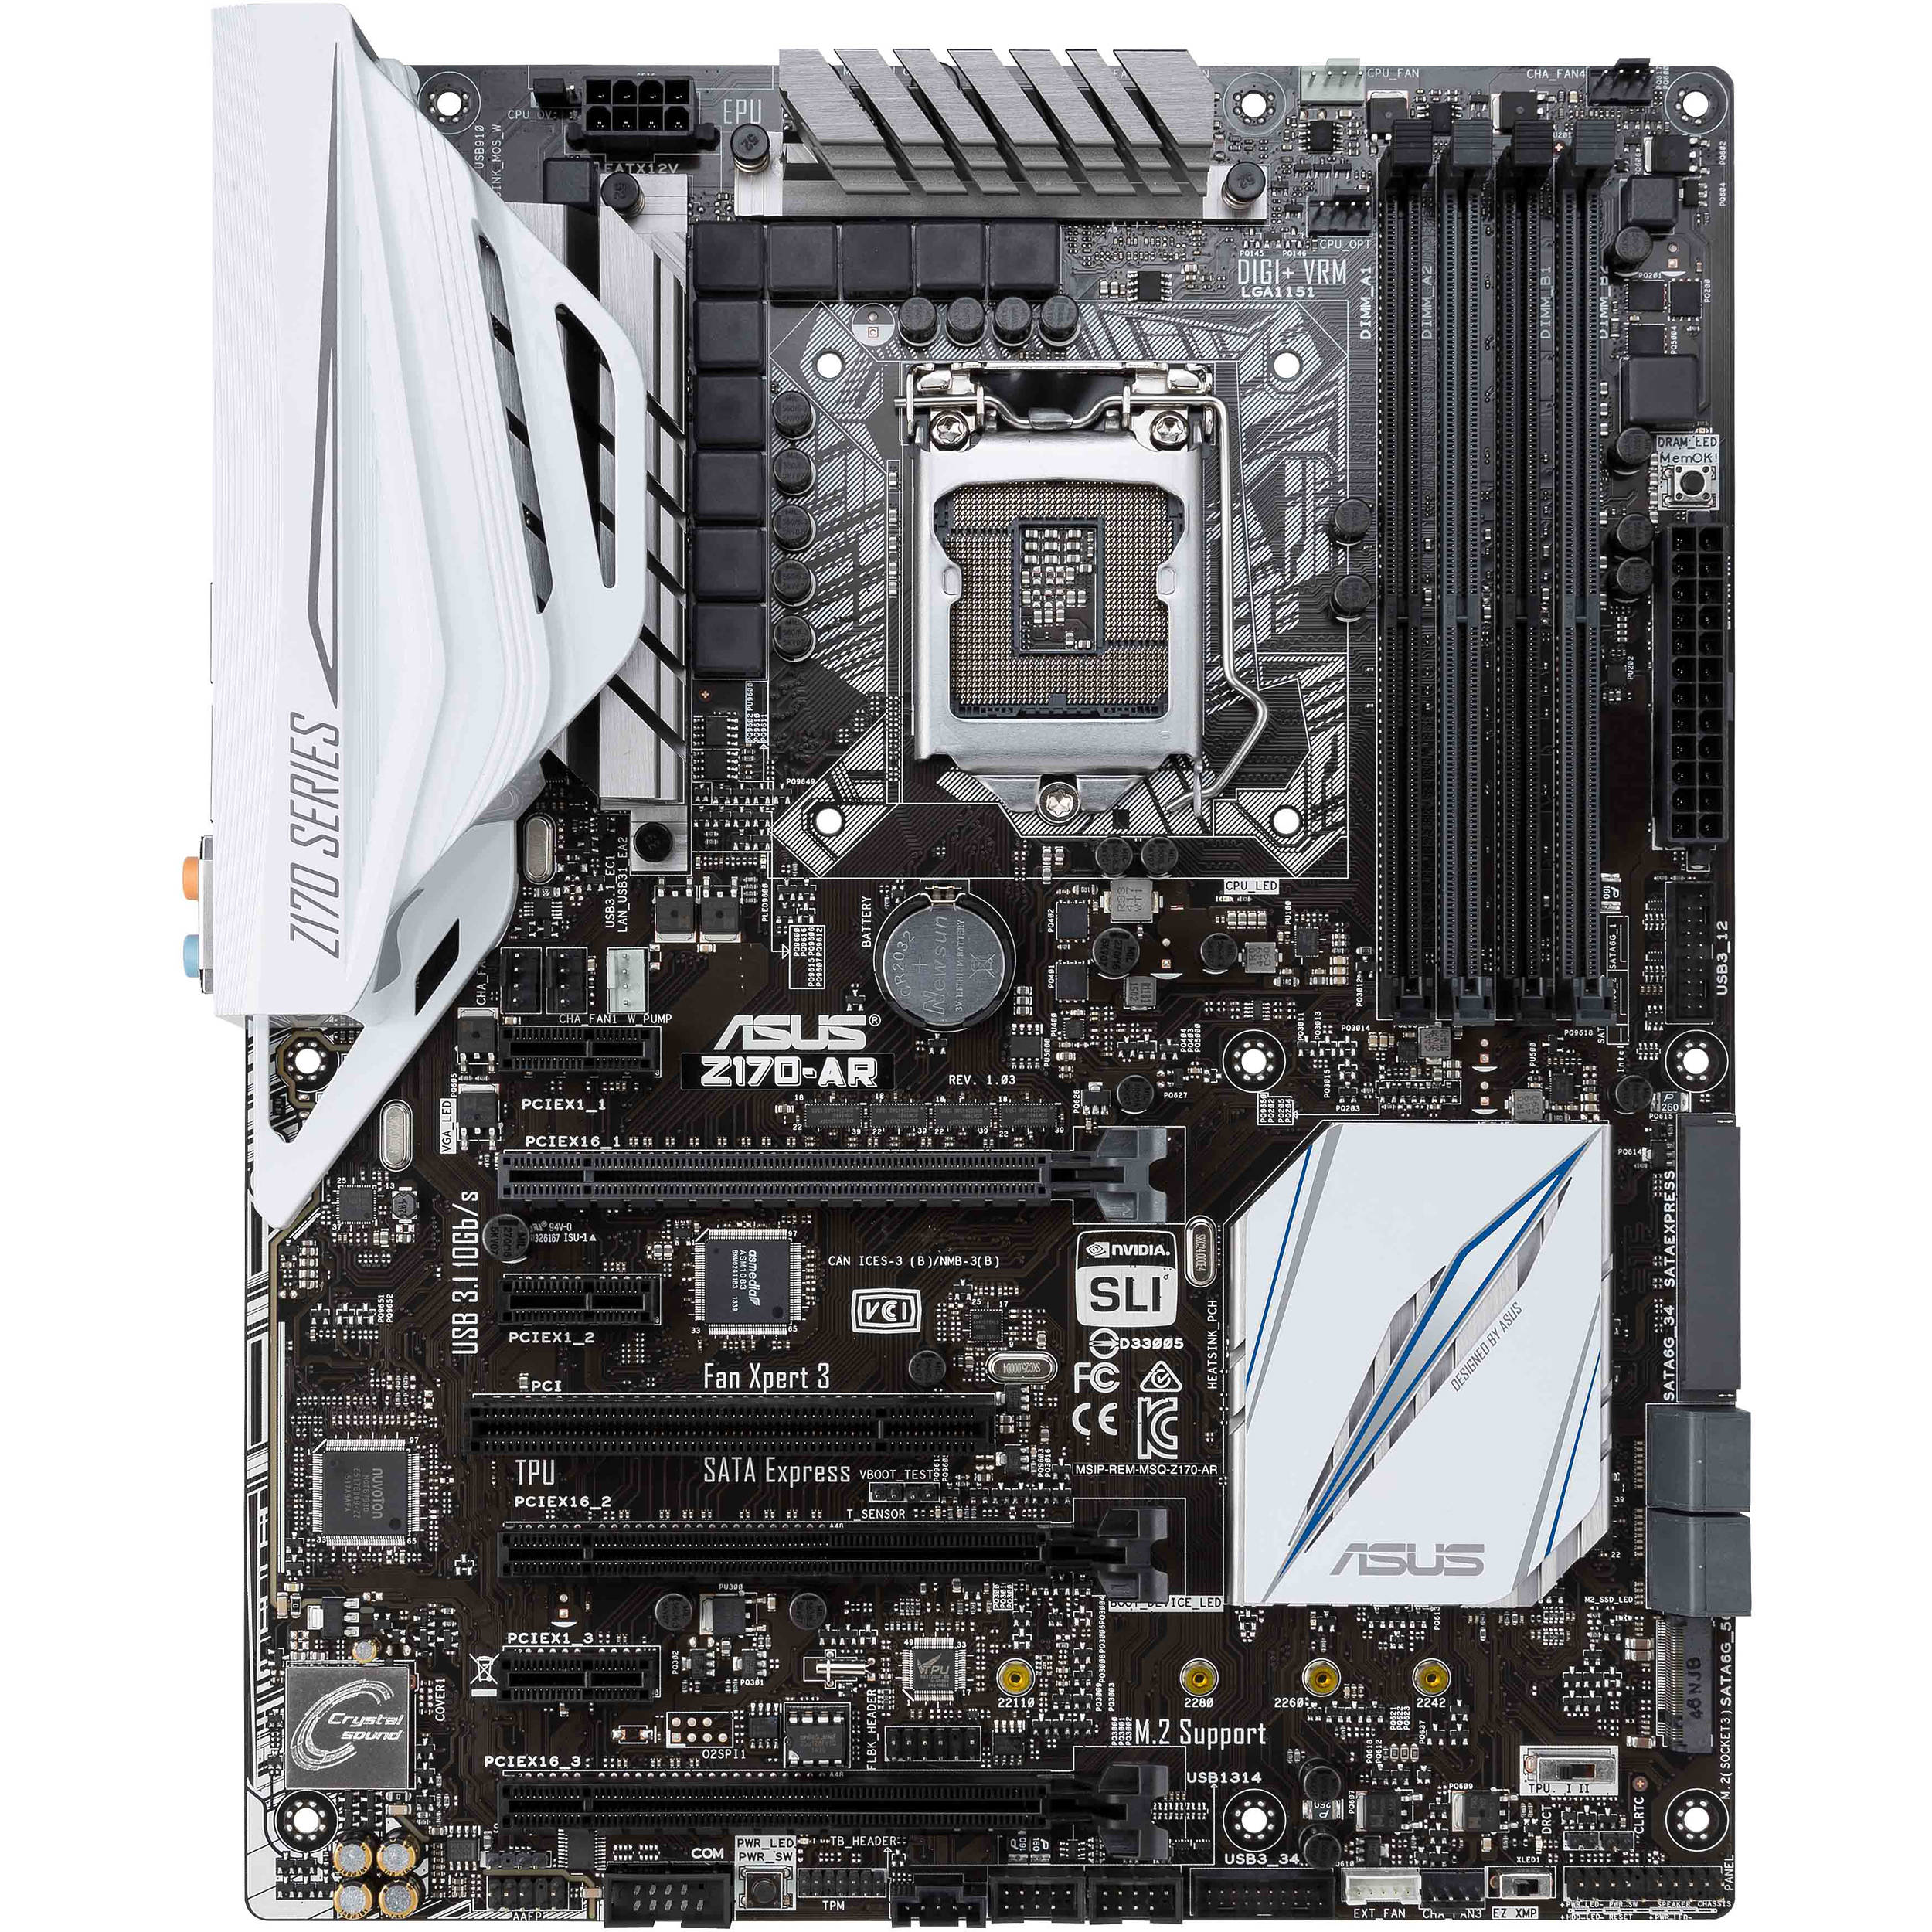 ASUS Z170-AR MOTHERBOARD DRIVER